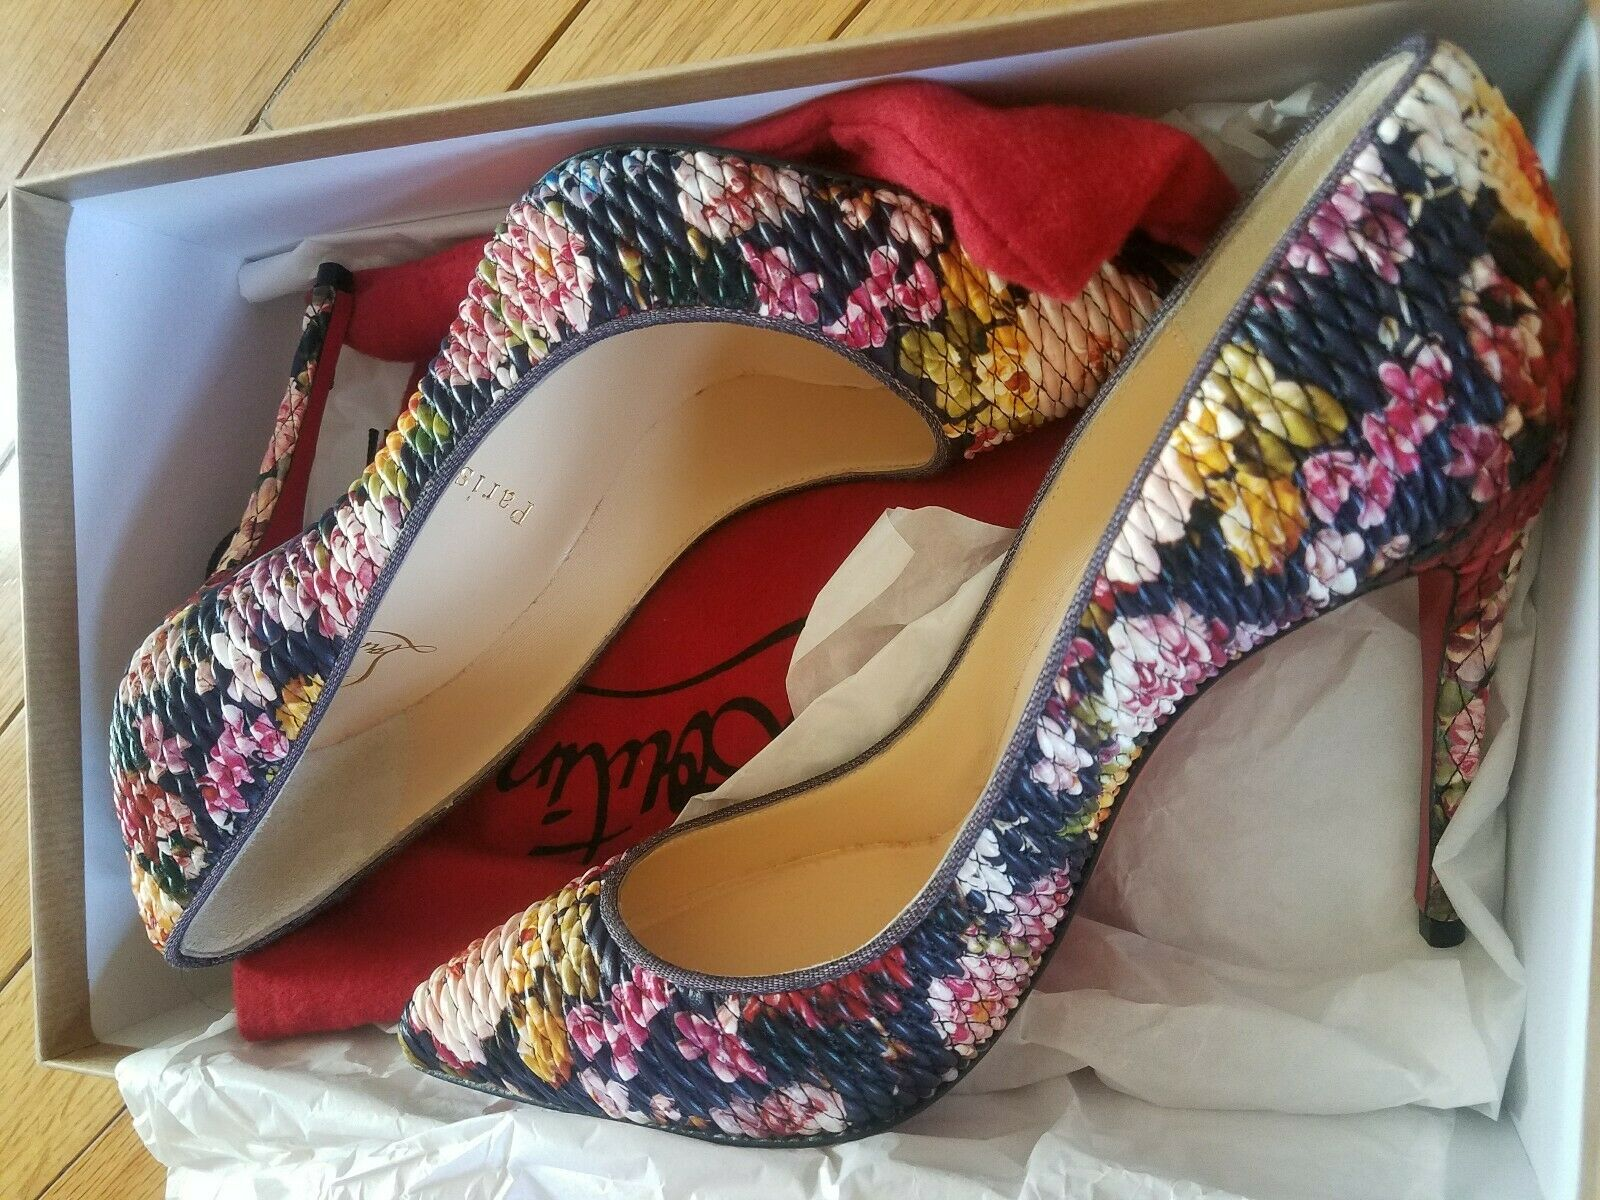 Christian Christian Christian Louboutin Multicolord Floral Pigalles (Free Shipping) c70f43